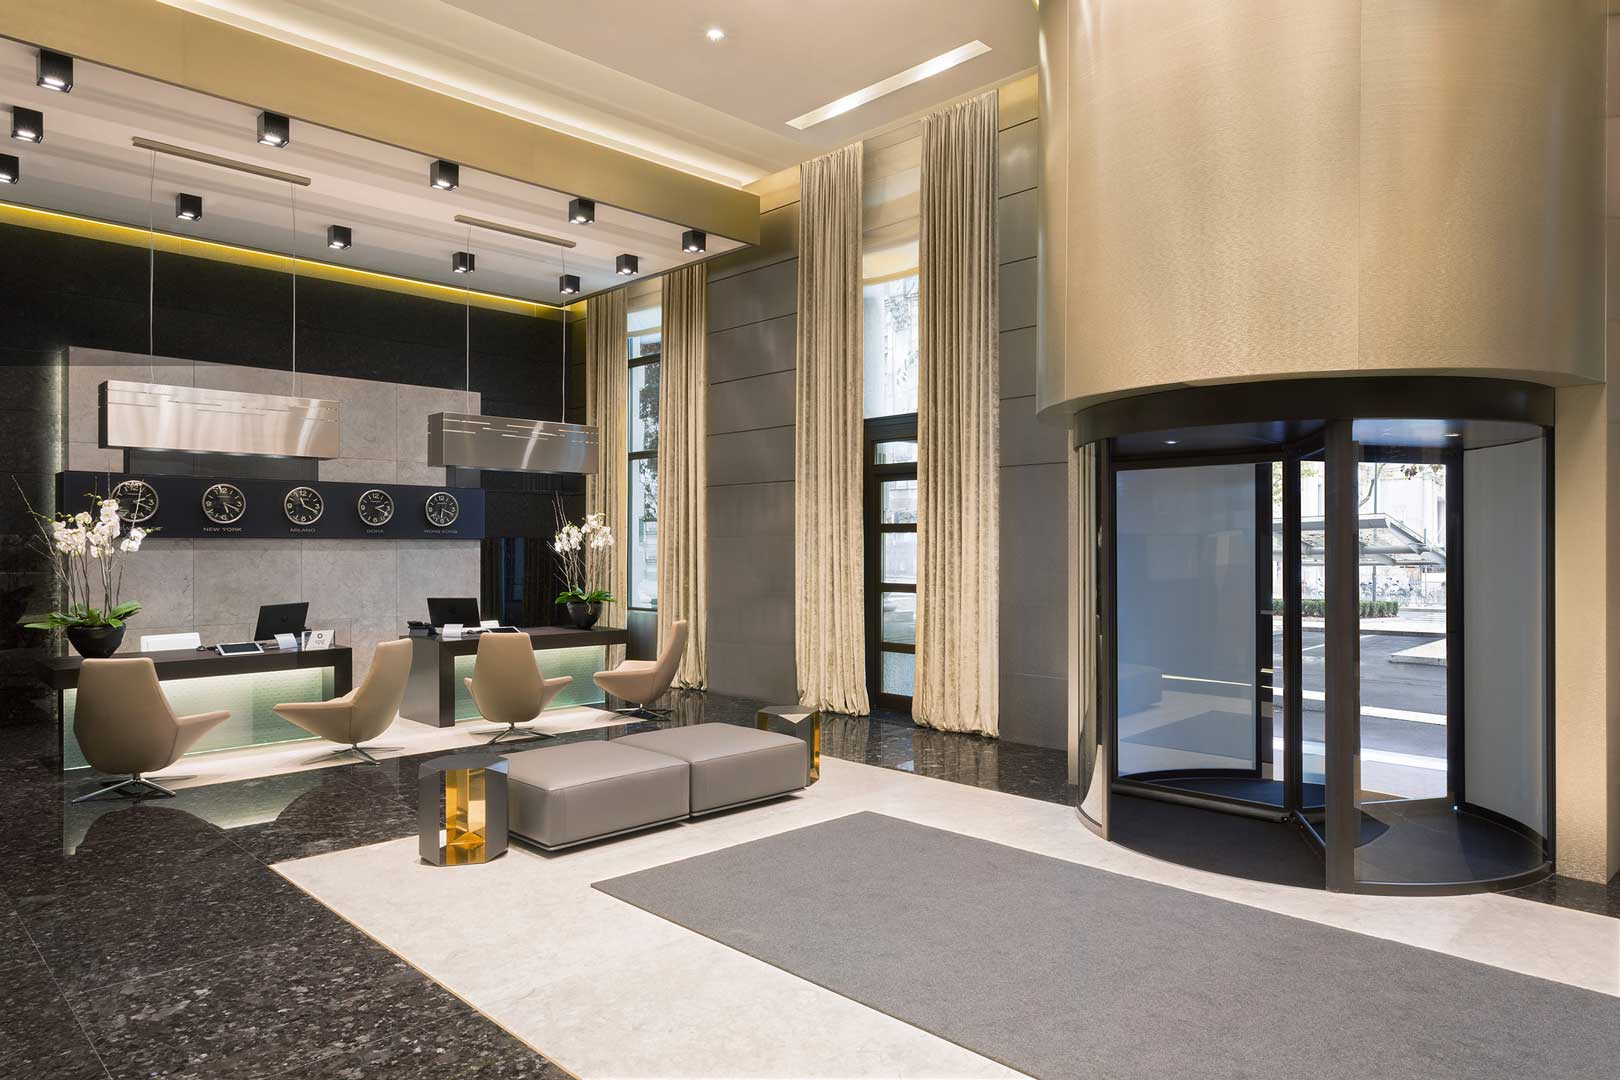 Excelsior Hotel Gallia Flawless Milano The Lifestyle Guide